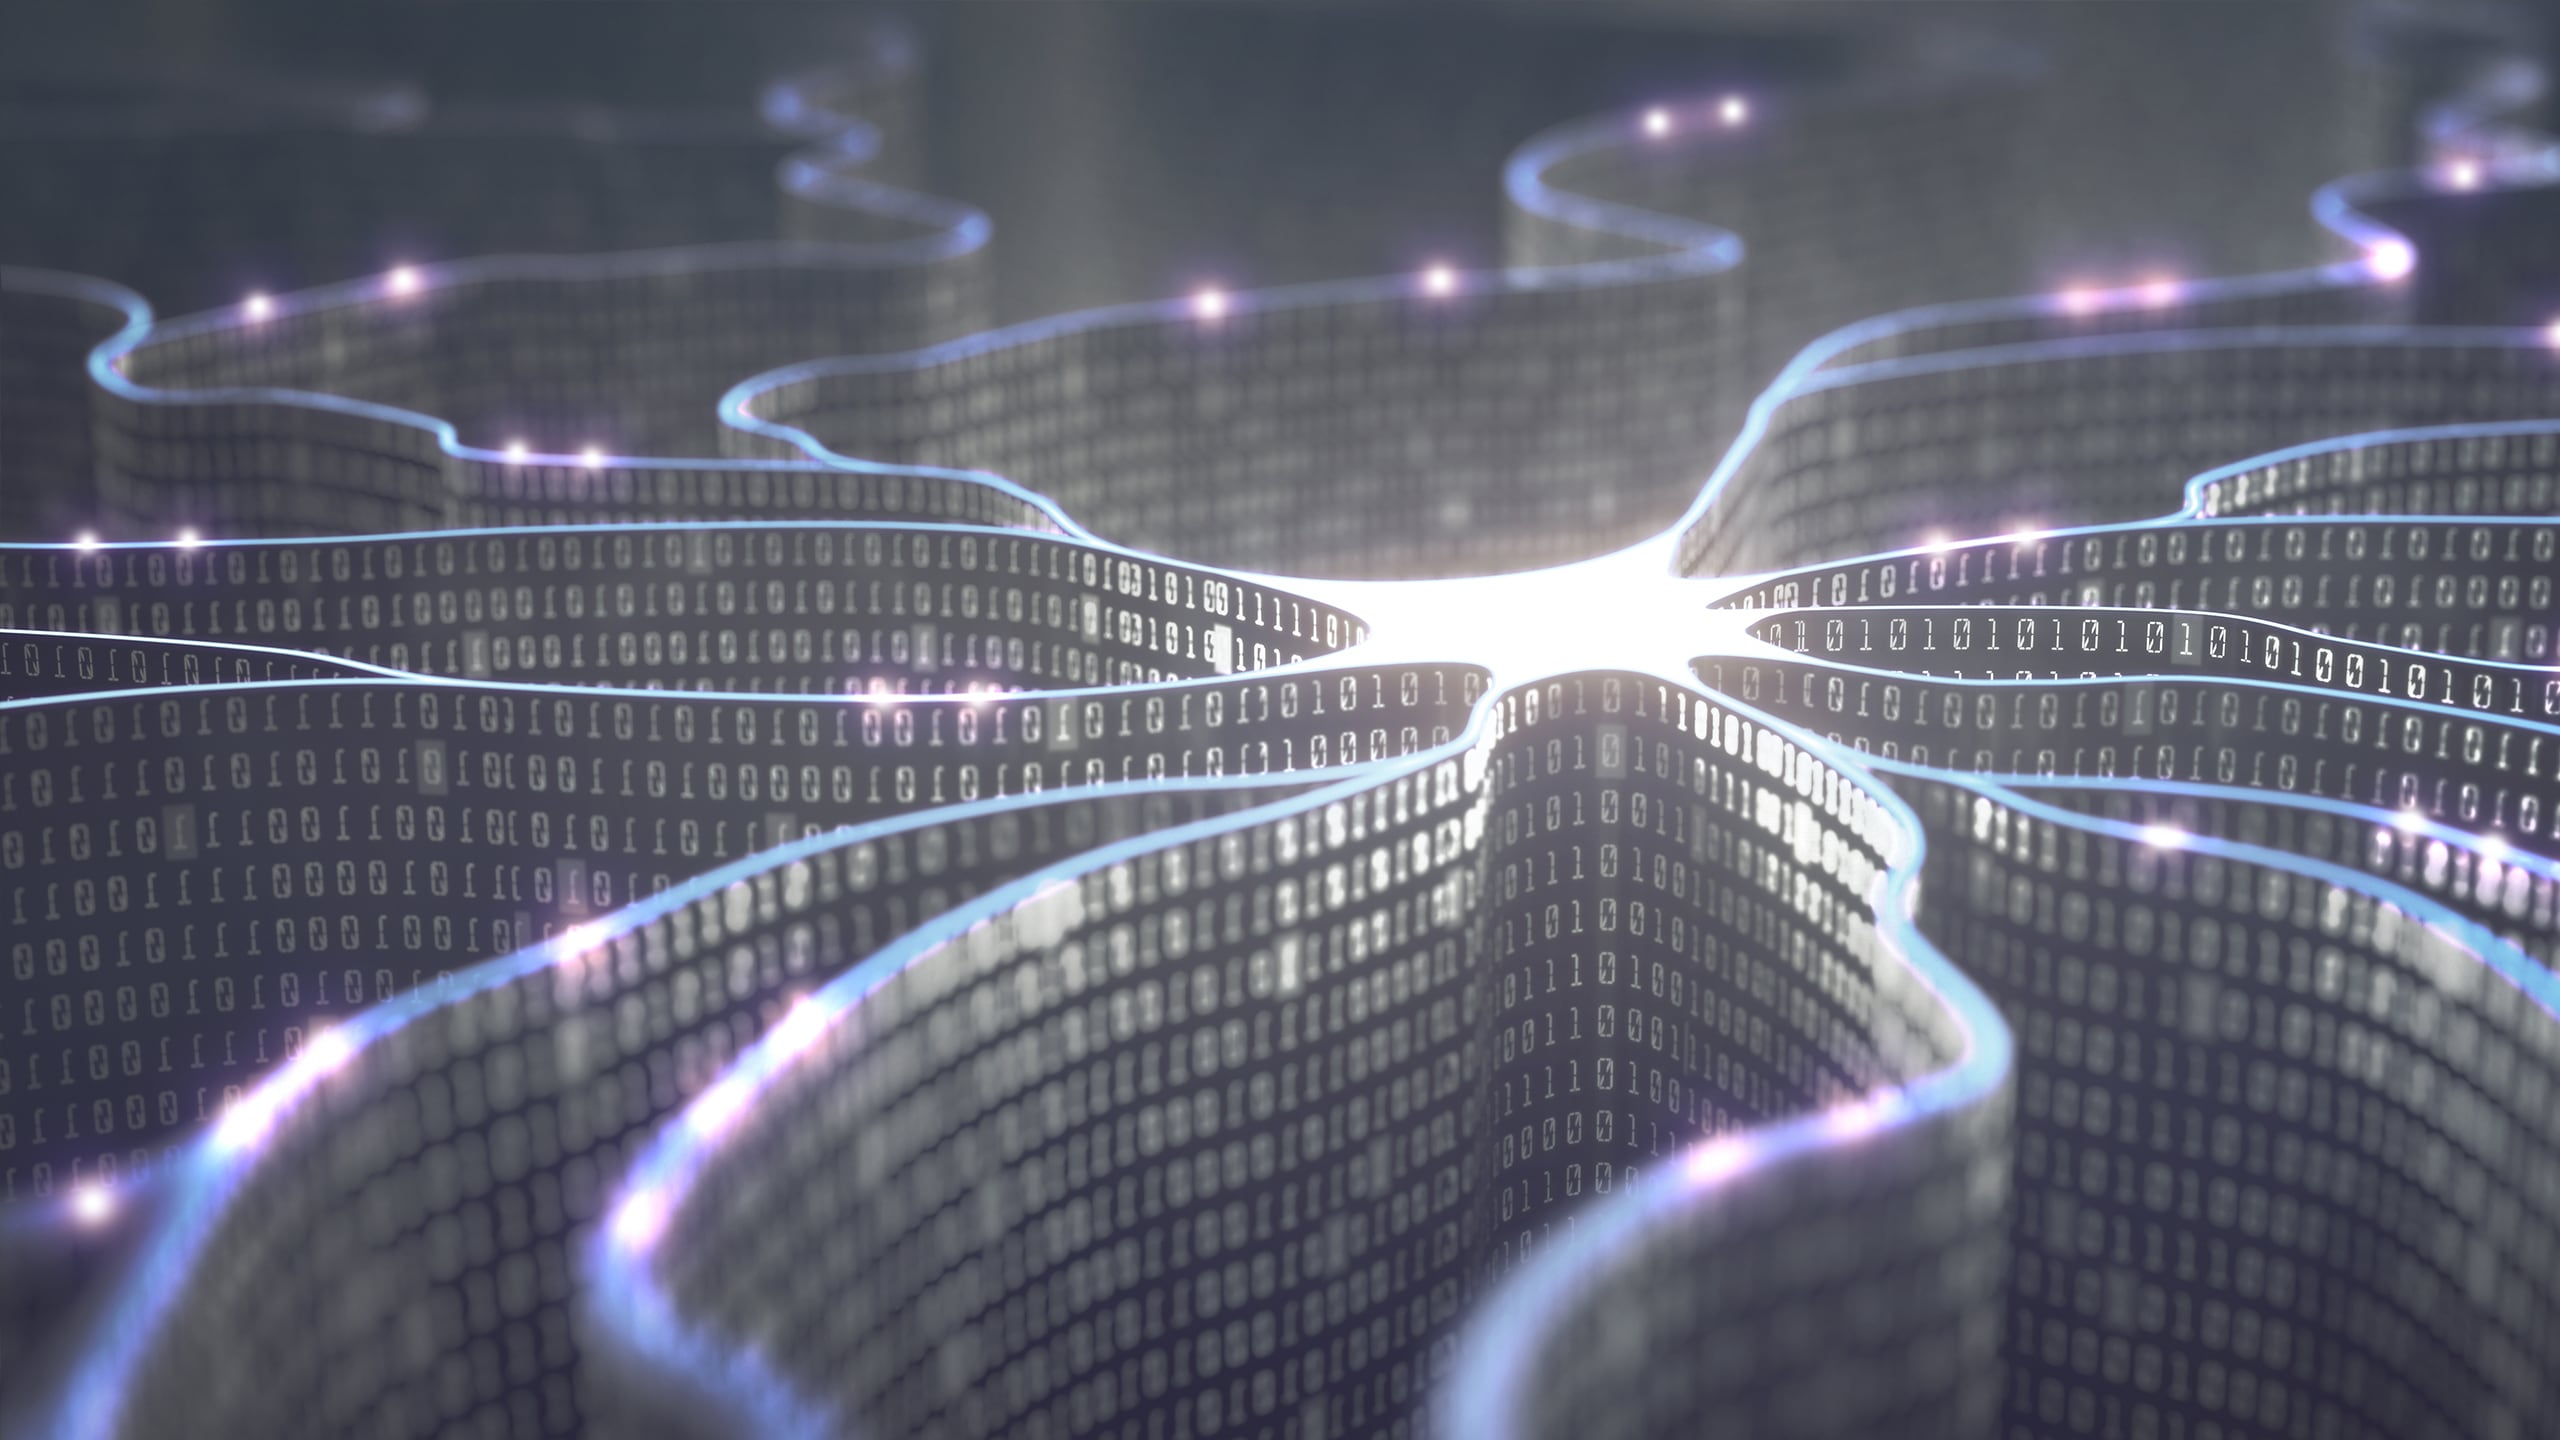 Artificial neuron in concept of artificial intelligence. Wall-shaped binary codes make transmission lines of pulses, information in an analogy to a microchip.